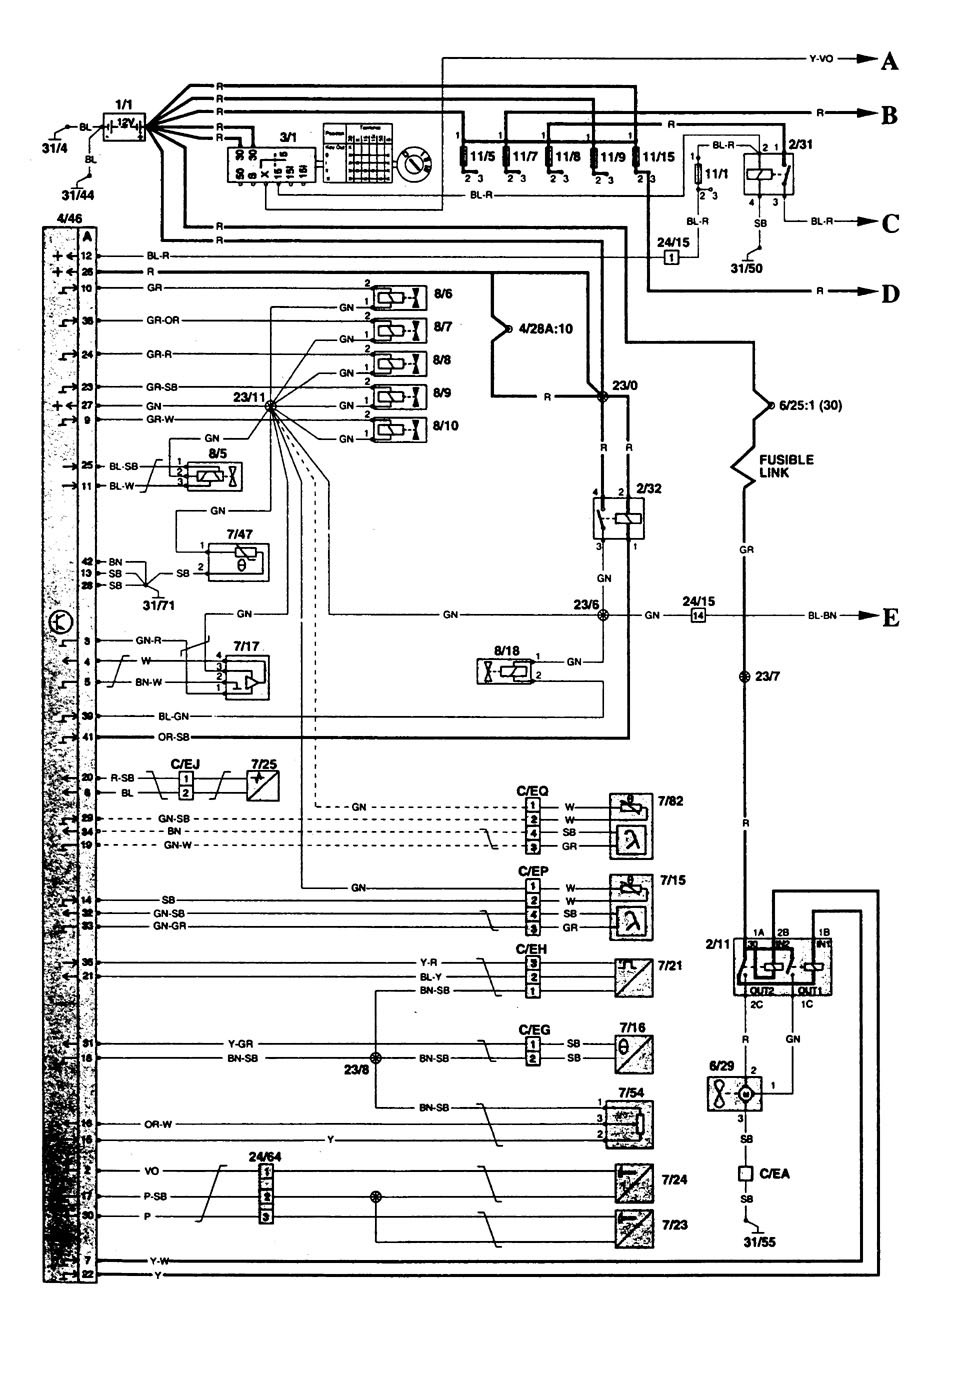 1994 Volvo 850 Abs Wiring Diagram bull Wiring Diagram For Free